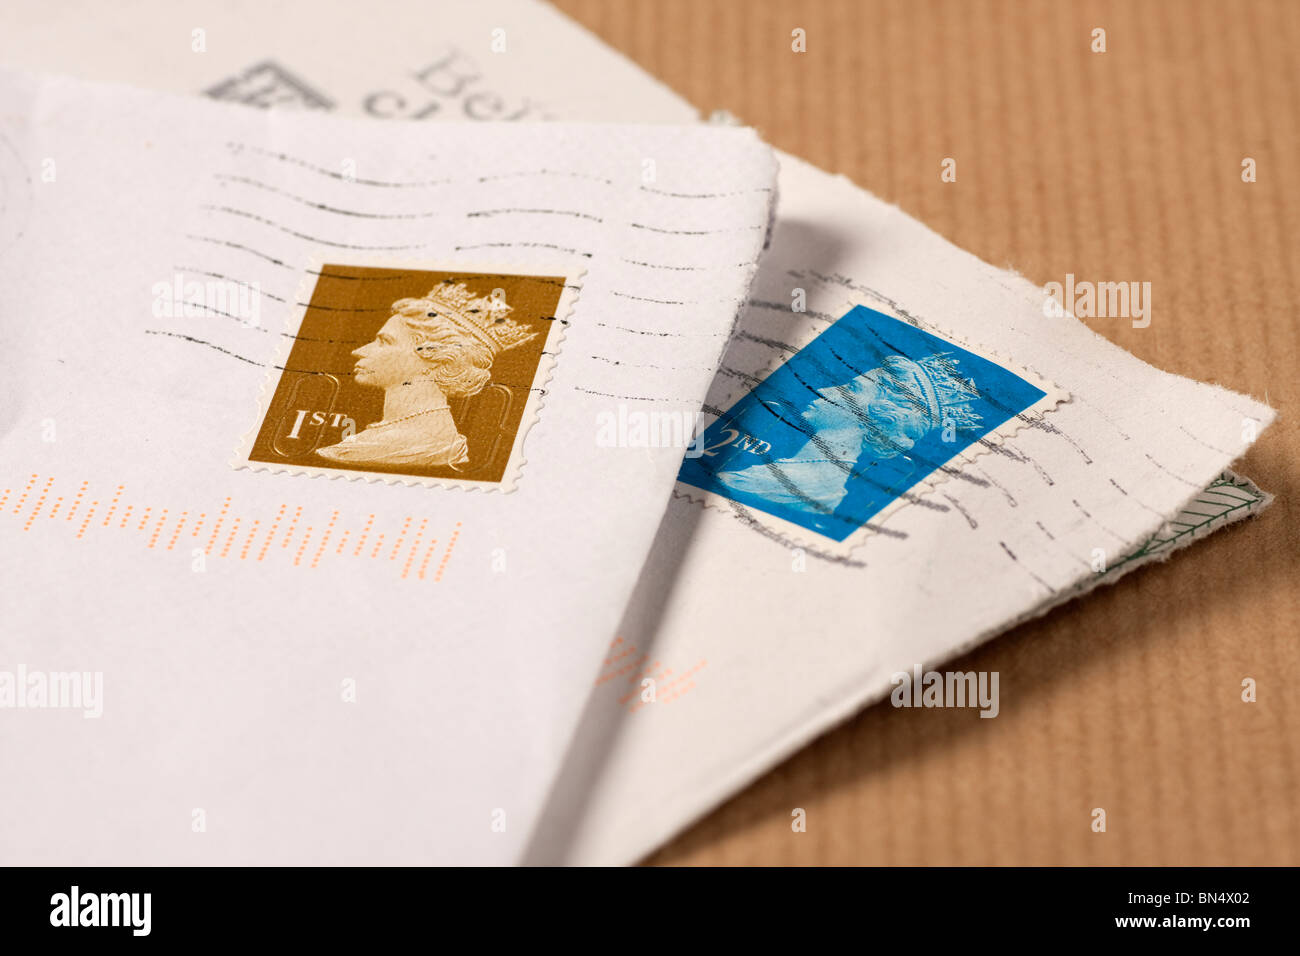 Envelopes with 1st & 2nd class UK postage stamps on brown paper - Stock Image